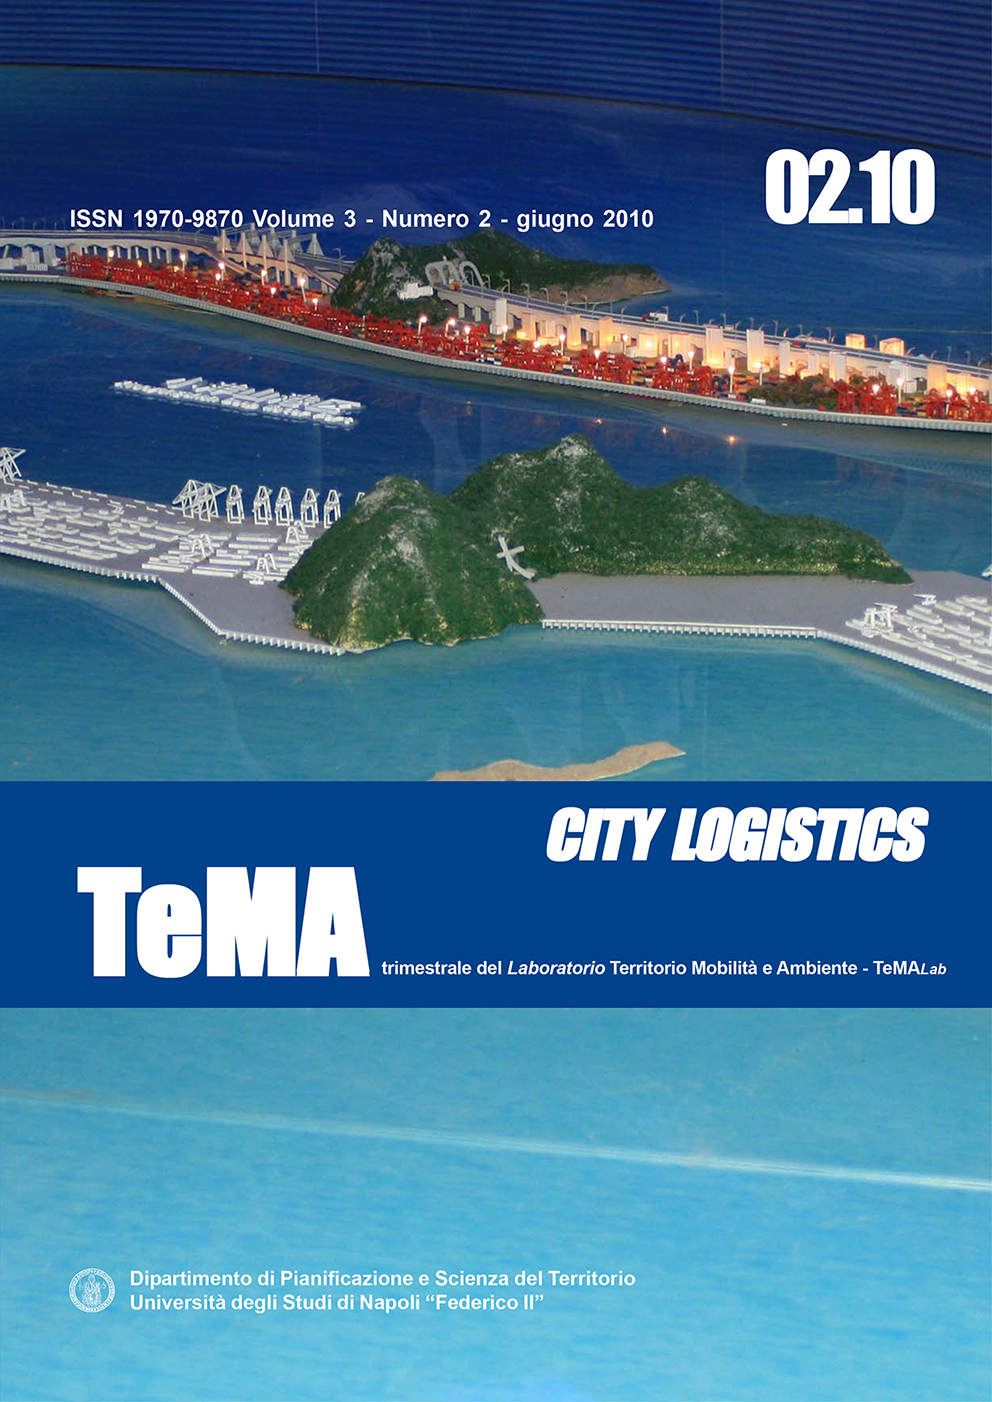 11_Vol 3, N° 2 (2010): City Logistics